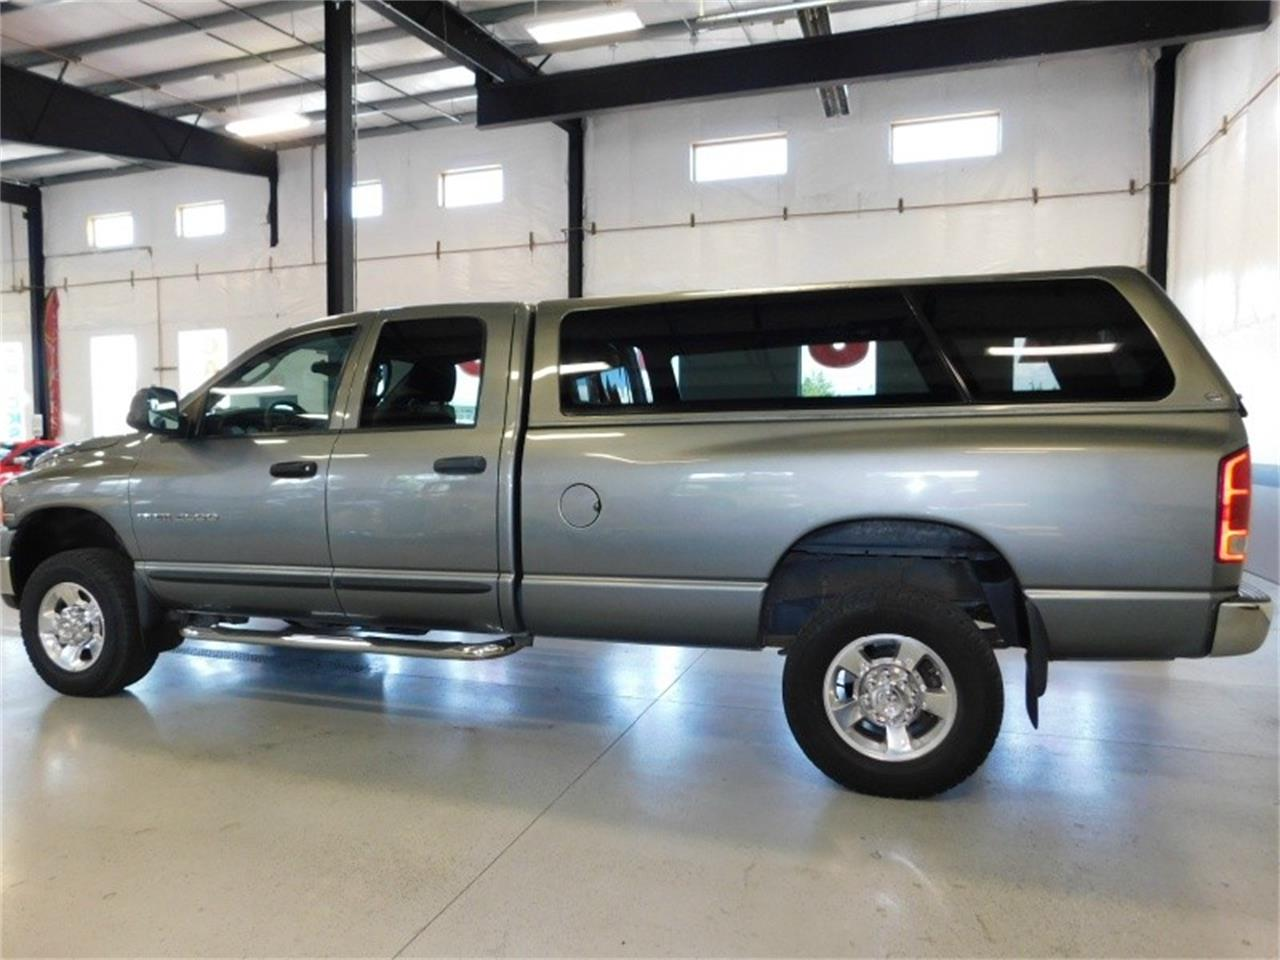 2005 Dodge Ram 2500 (CC-1253454) for sale in Bend, Oregon